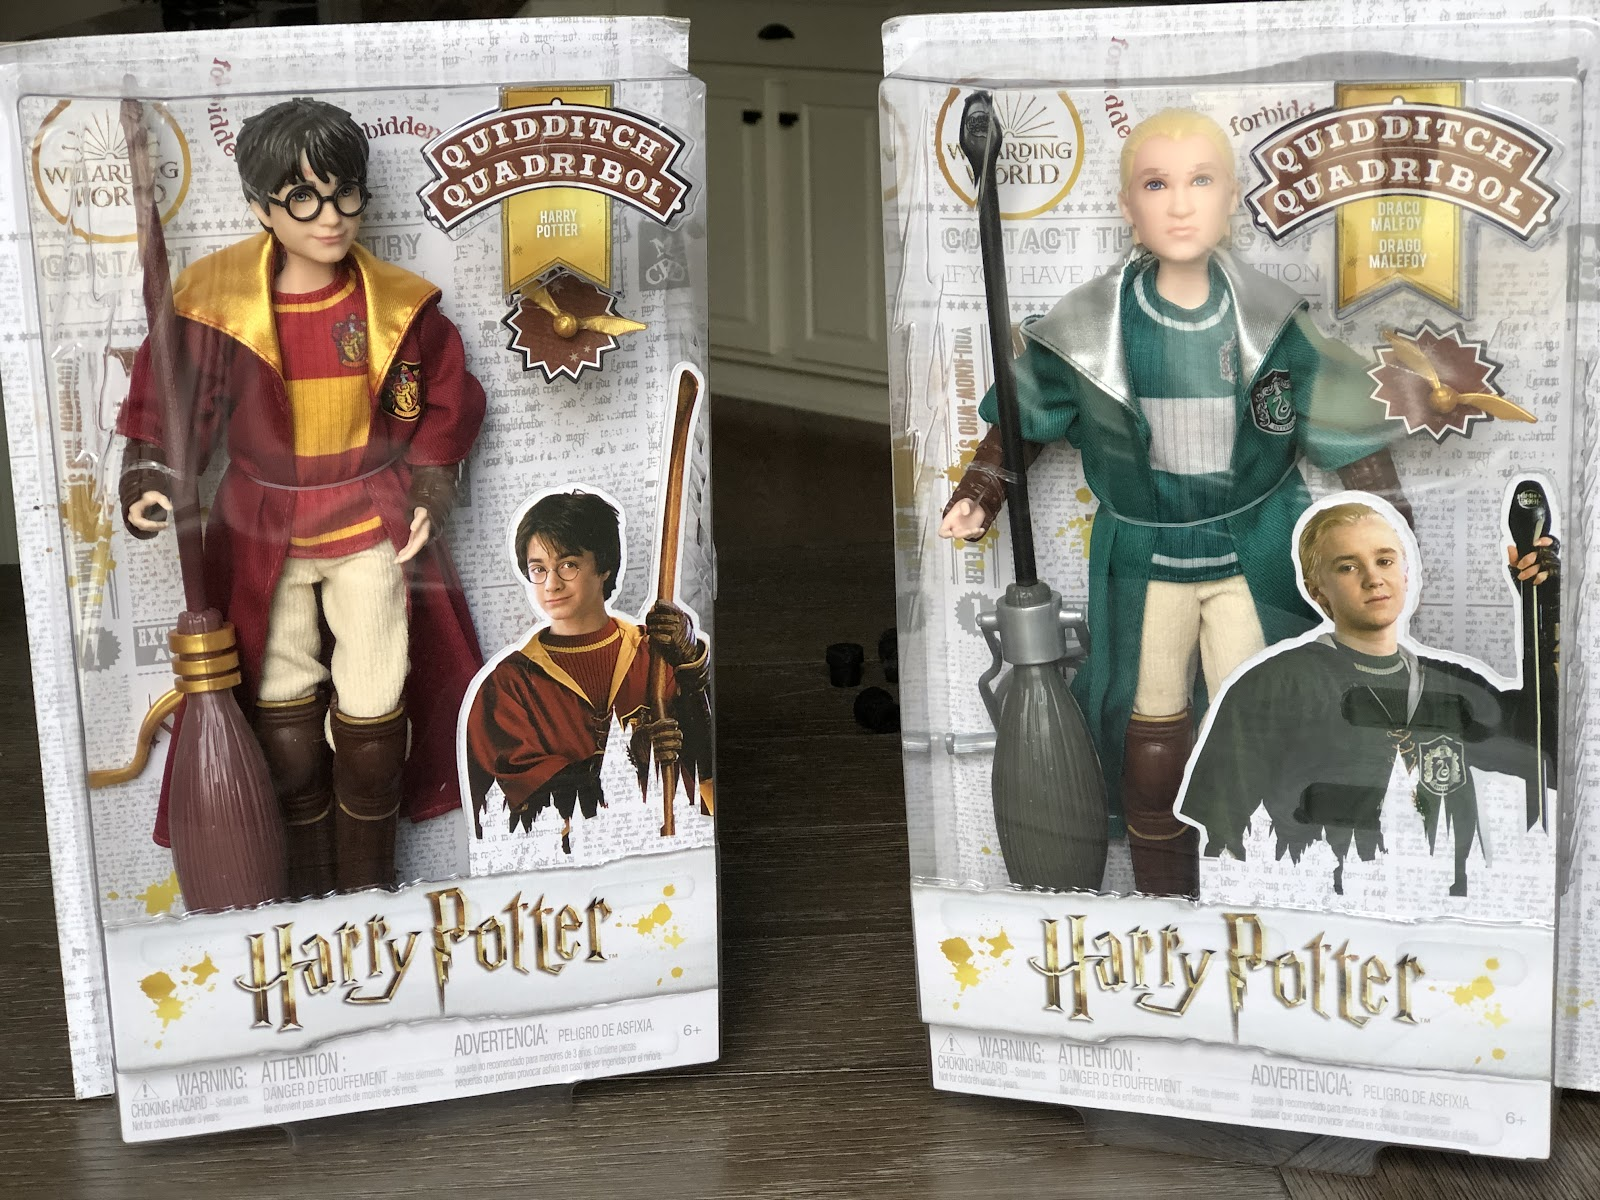 Two see through boxes with Harry Potter action figures in them.